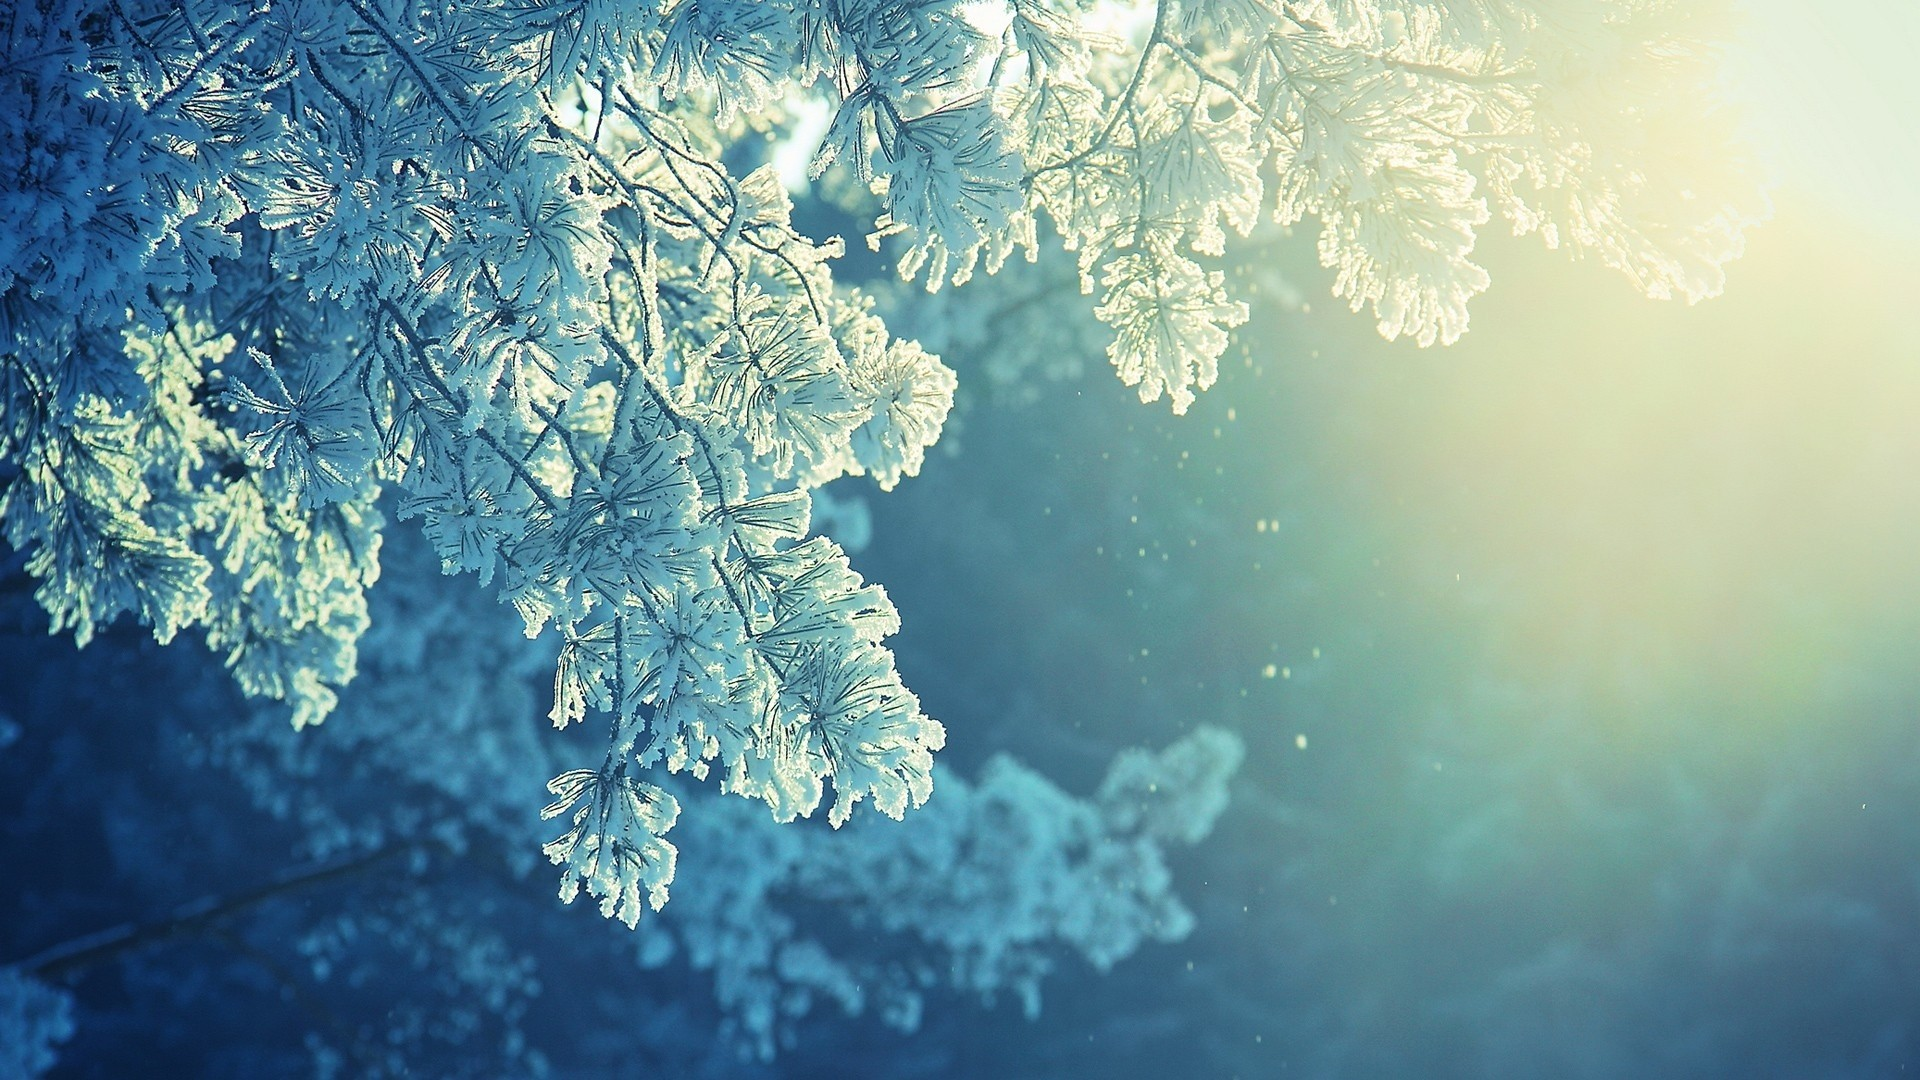 Frost Flakes Mother Nature Trees Soft Sunlight Organic Mac 1920x1080